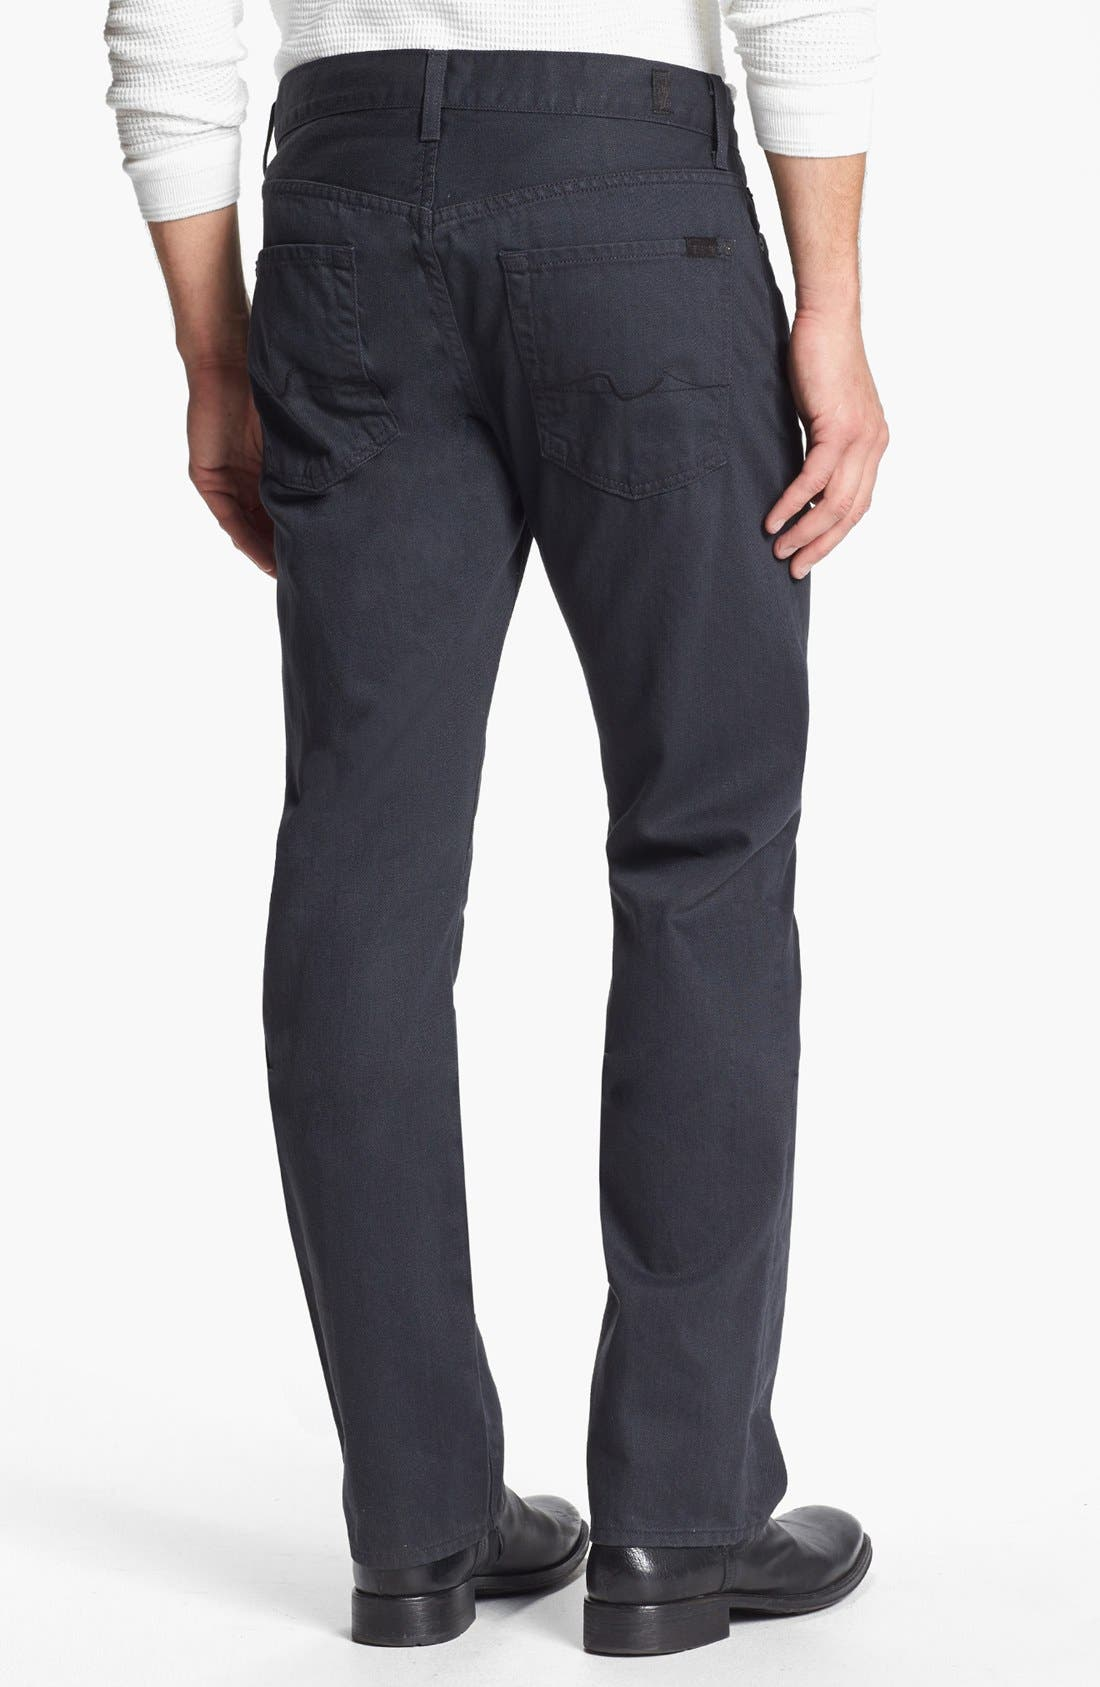 Alternate Image 1 Selected - 7 For All Mankind® 'Standard' Straight Leg Jeans (Agate Grey)